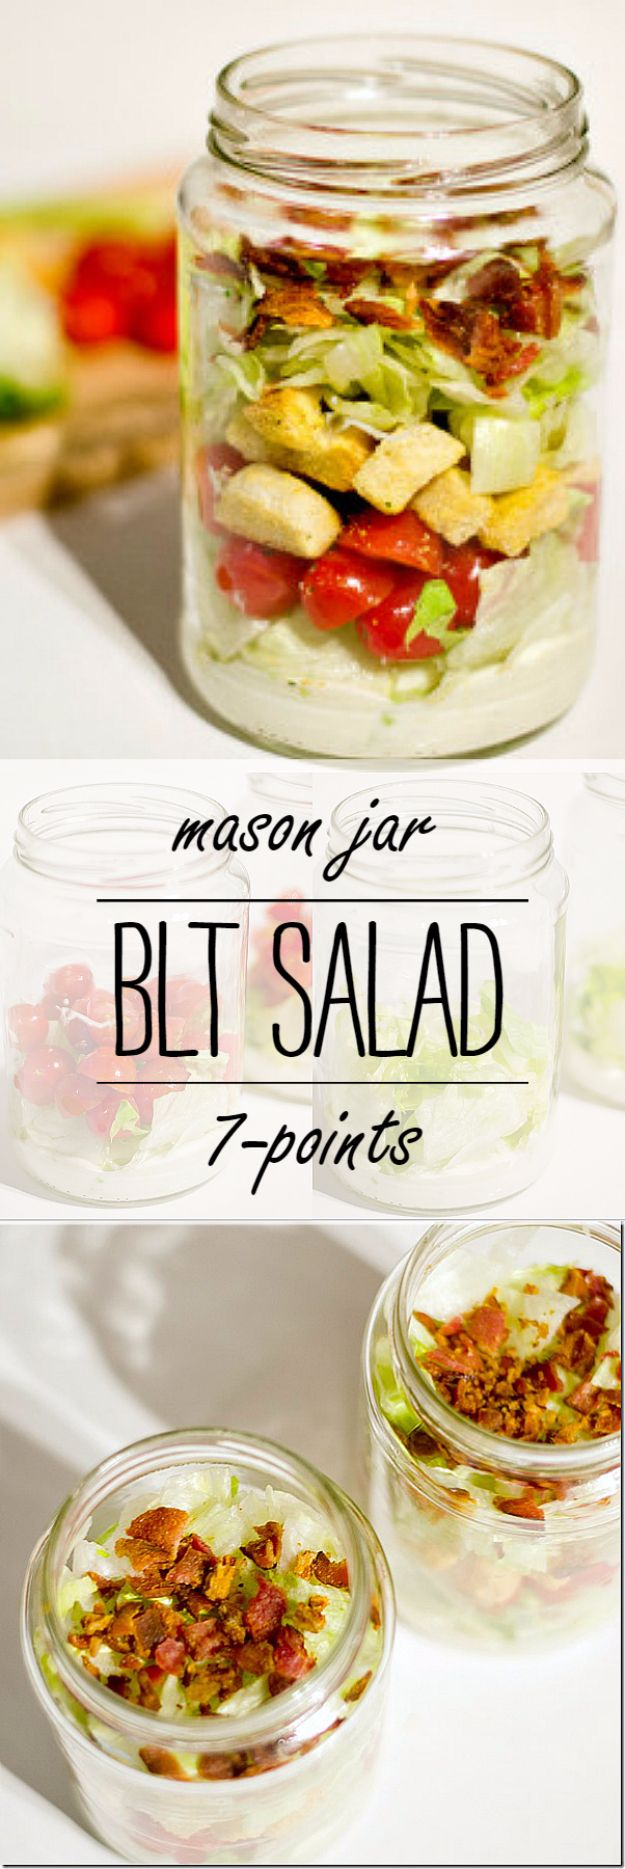 Best Recipes in A Jar - BLT Salad In A Jar - DIY Mason Jar Gifts, Cookie Recipes and Desserts, Canning Ideas, Overnight Oatmeal, How To Make Mason Jar Salad, Healthy Recipes and Printable Labels http://diyjoy.com/best-recipes-in-a-jar